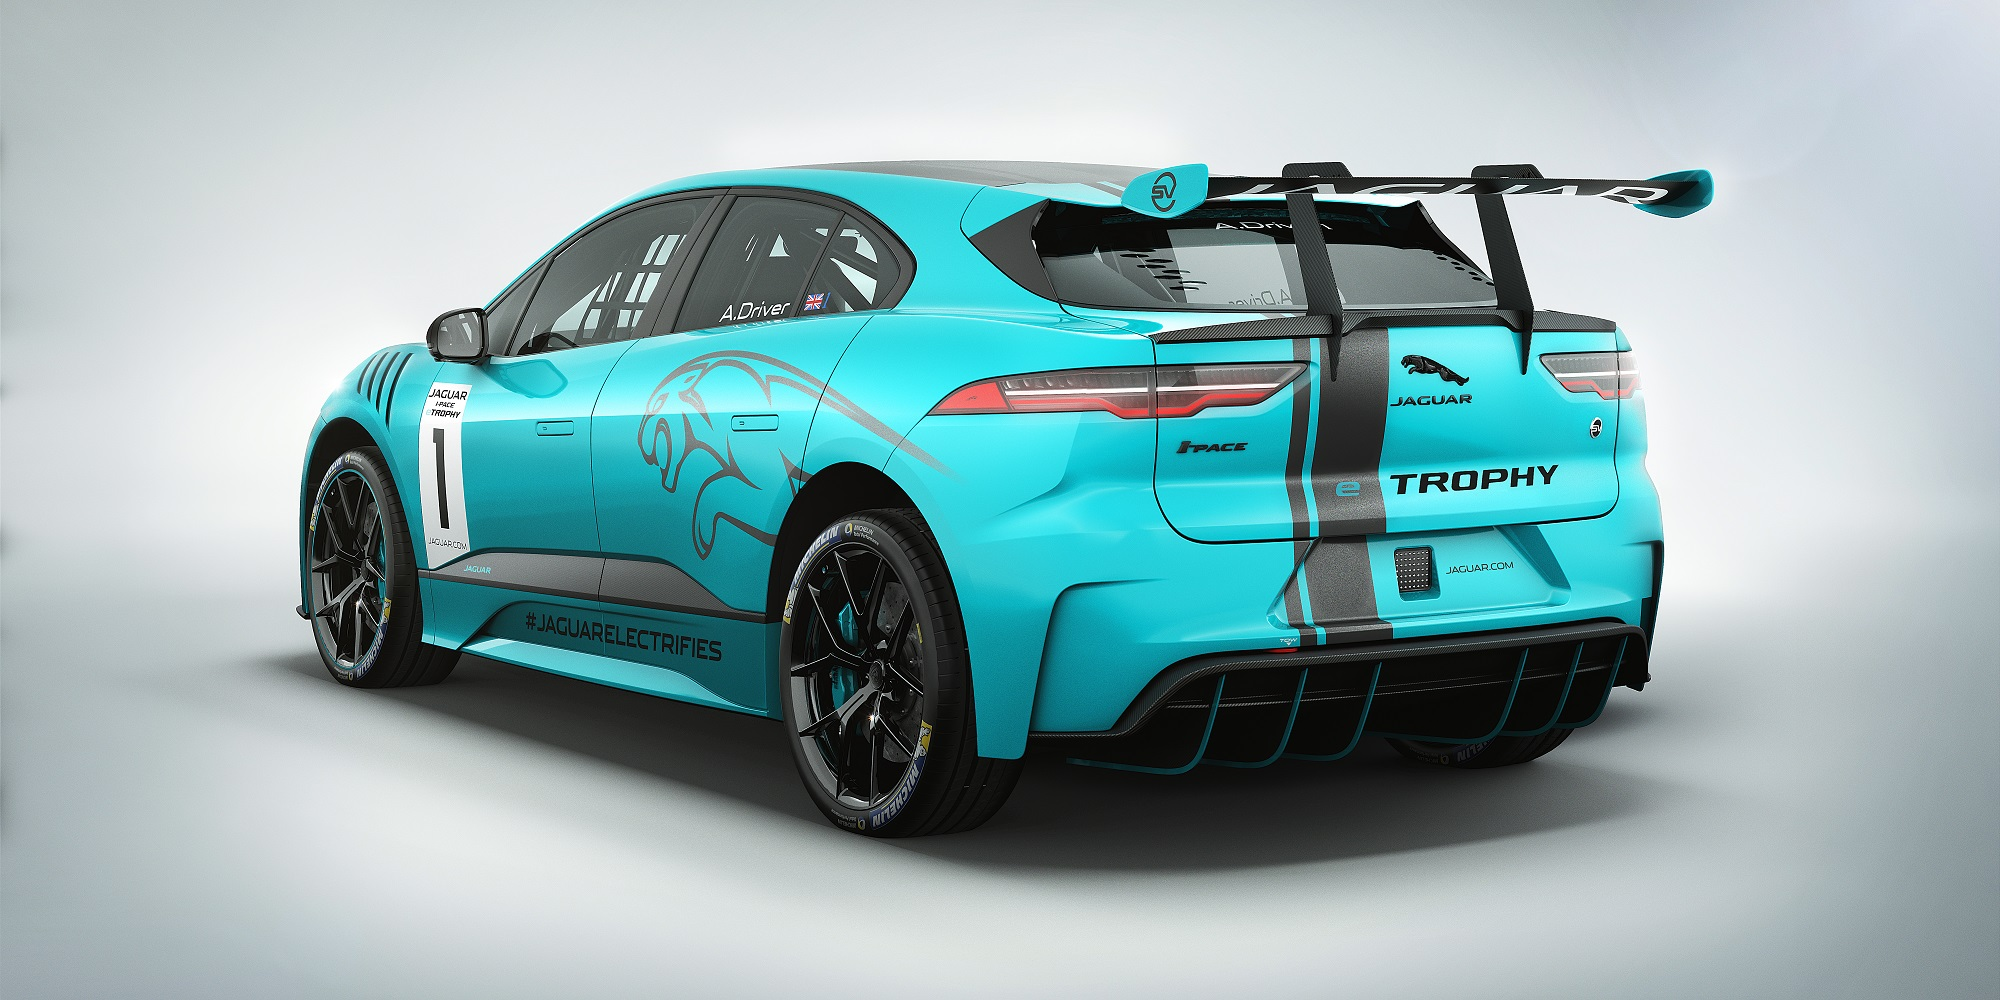 jaguarforums.com Jaguar I-PACE eTROPHY Race Series FIA Formula E Electirc Vehicles Racing Motorsport